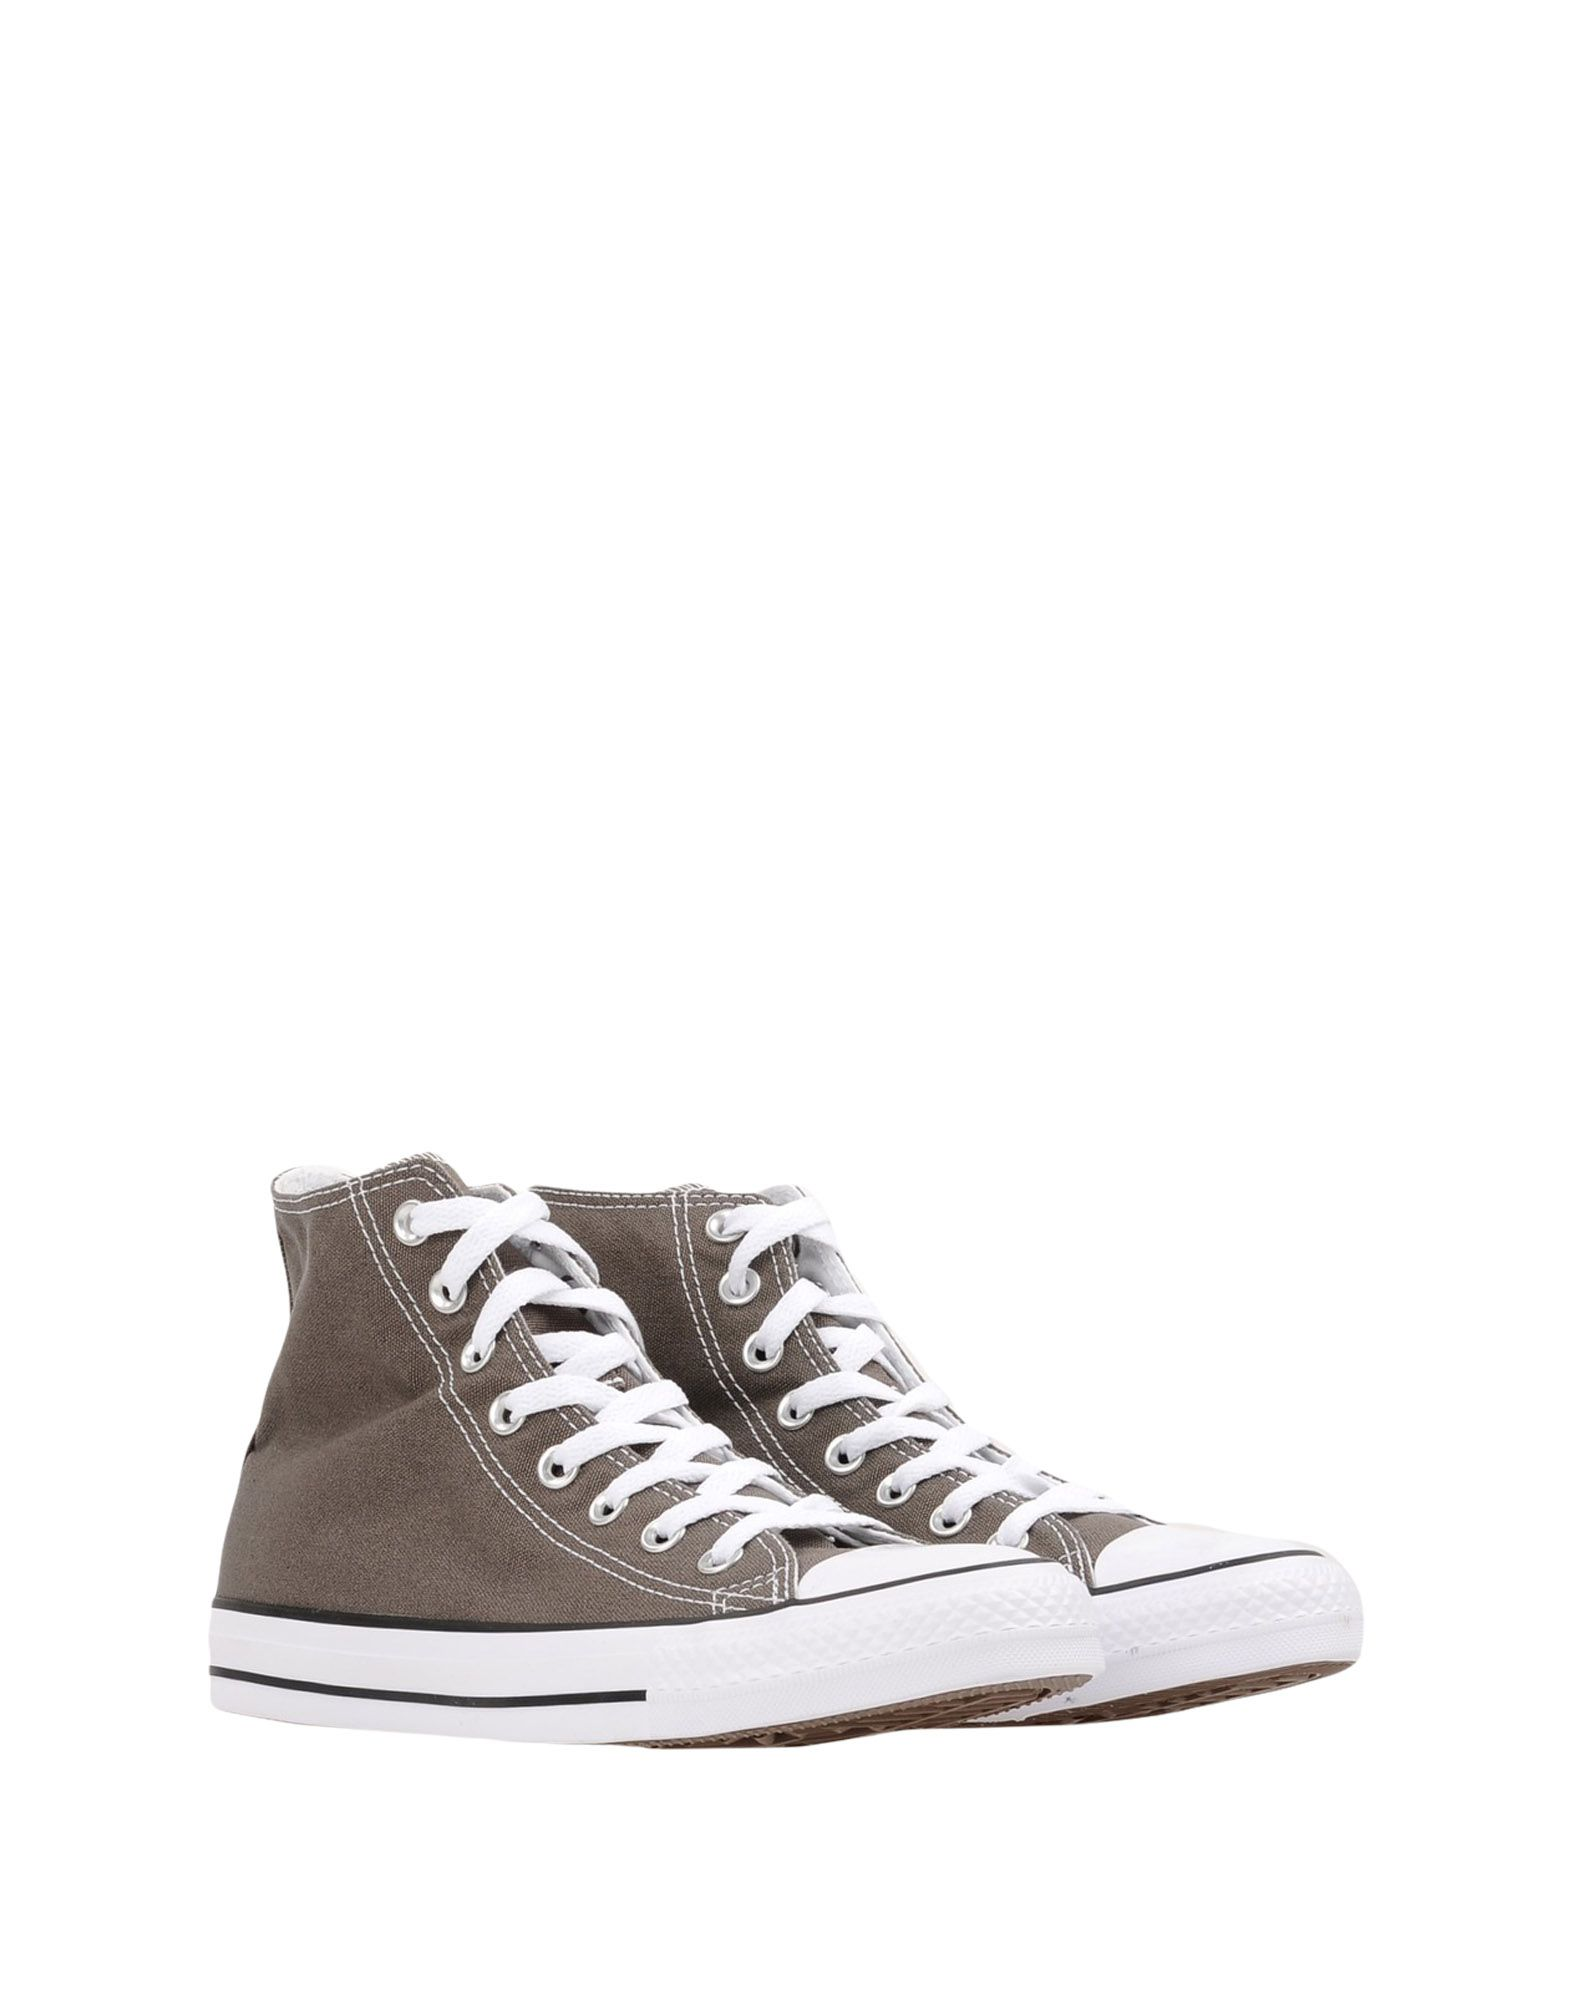 Sneakers Converse All Star Ct As Hi Canvas Core - Homme - Sneakers Converse All Star sur